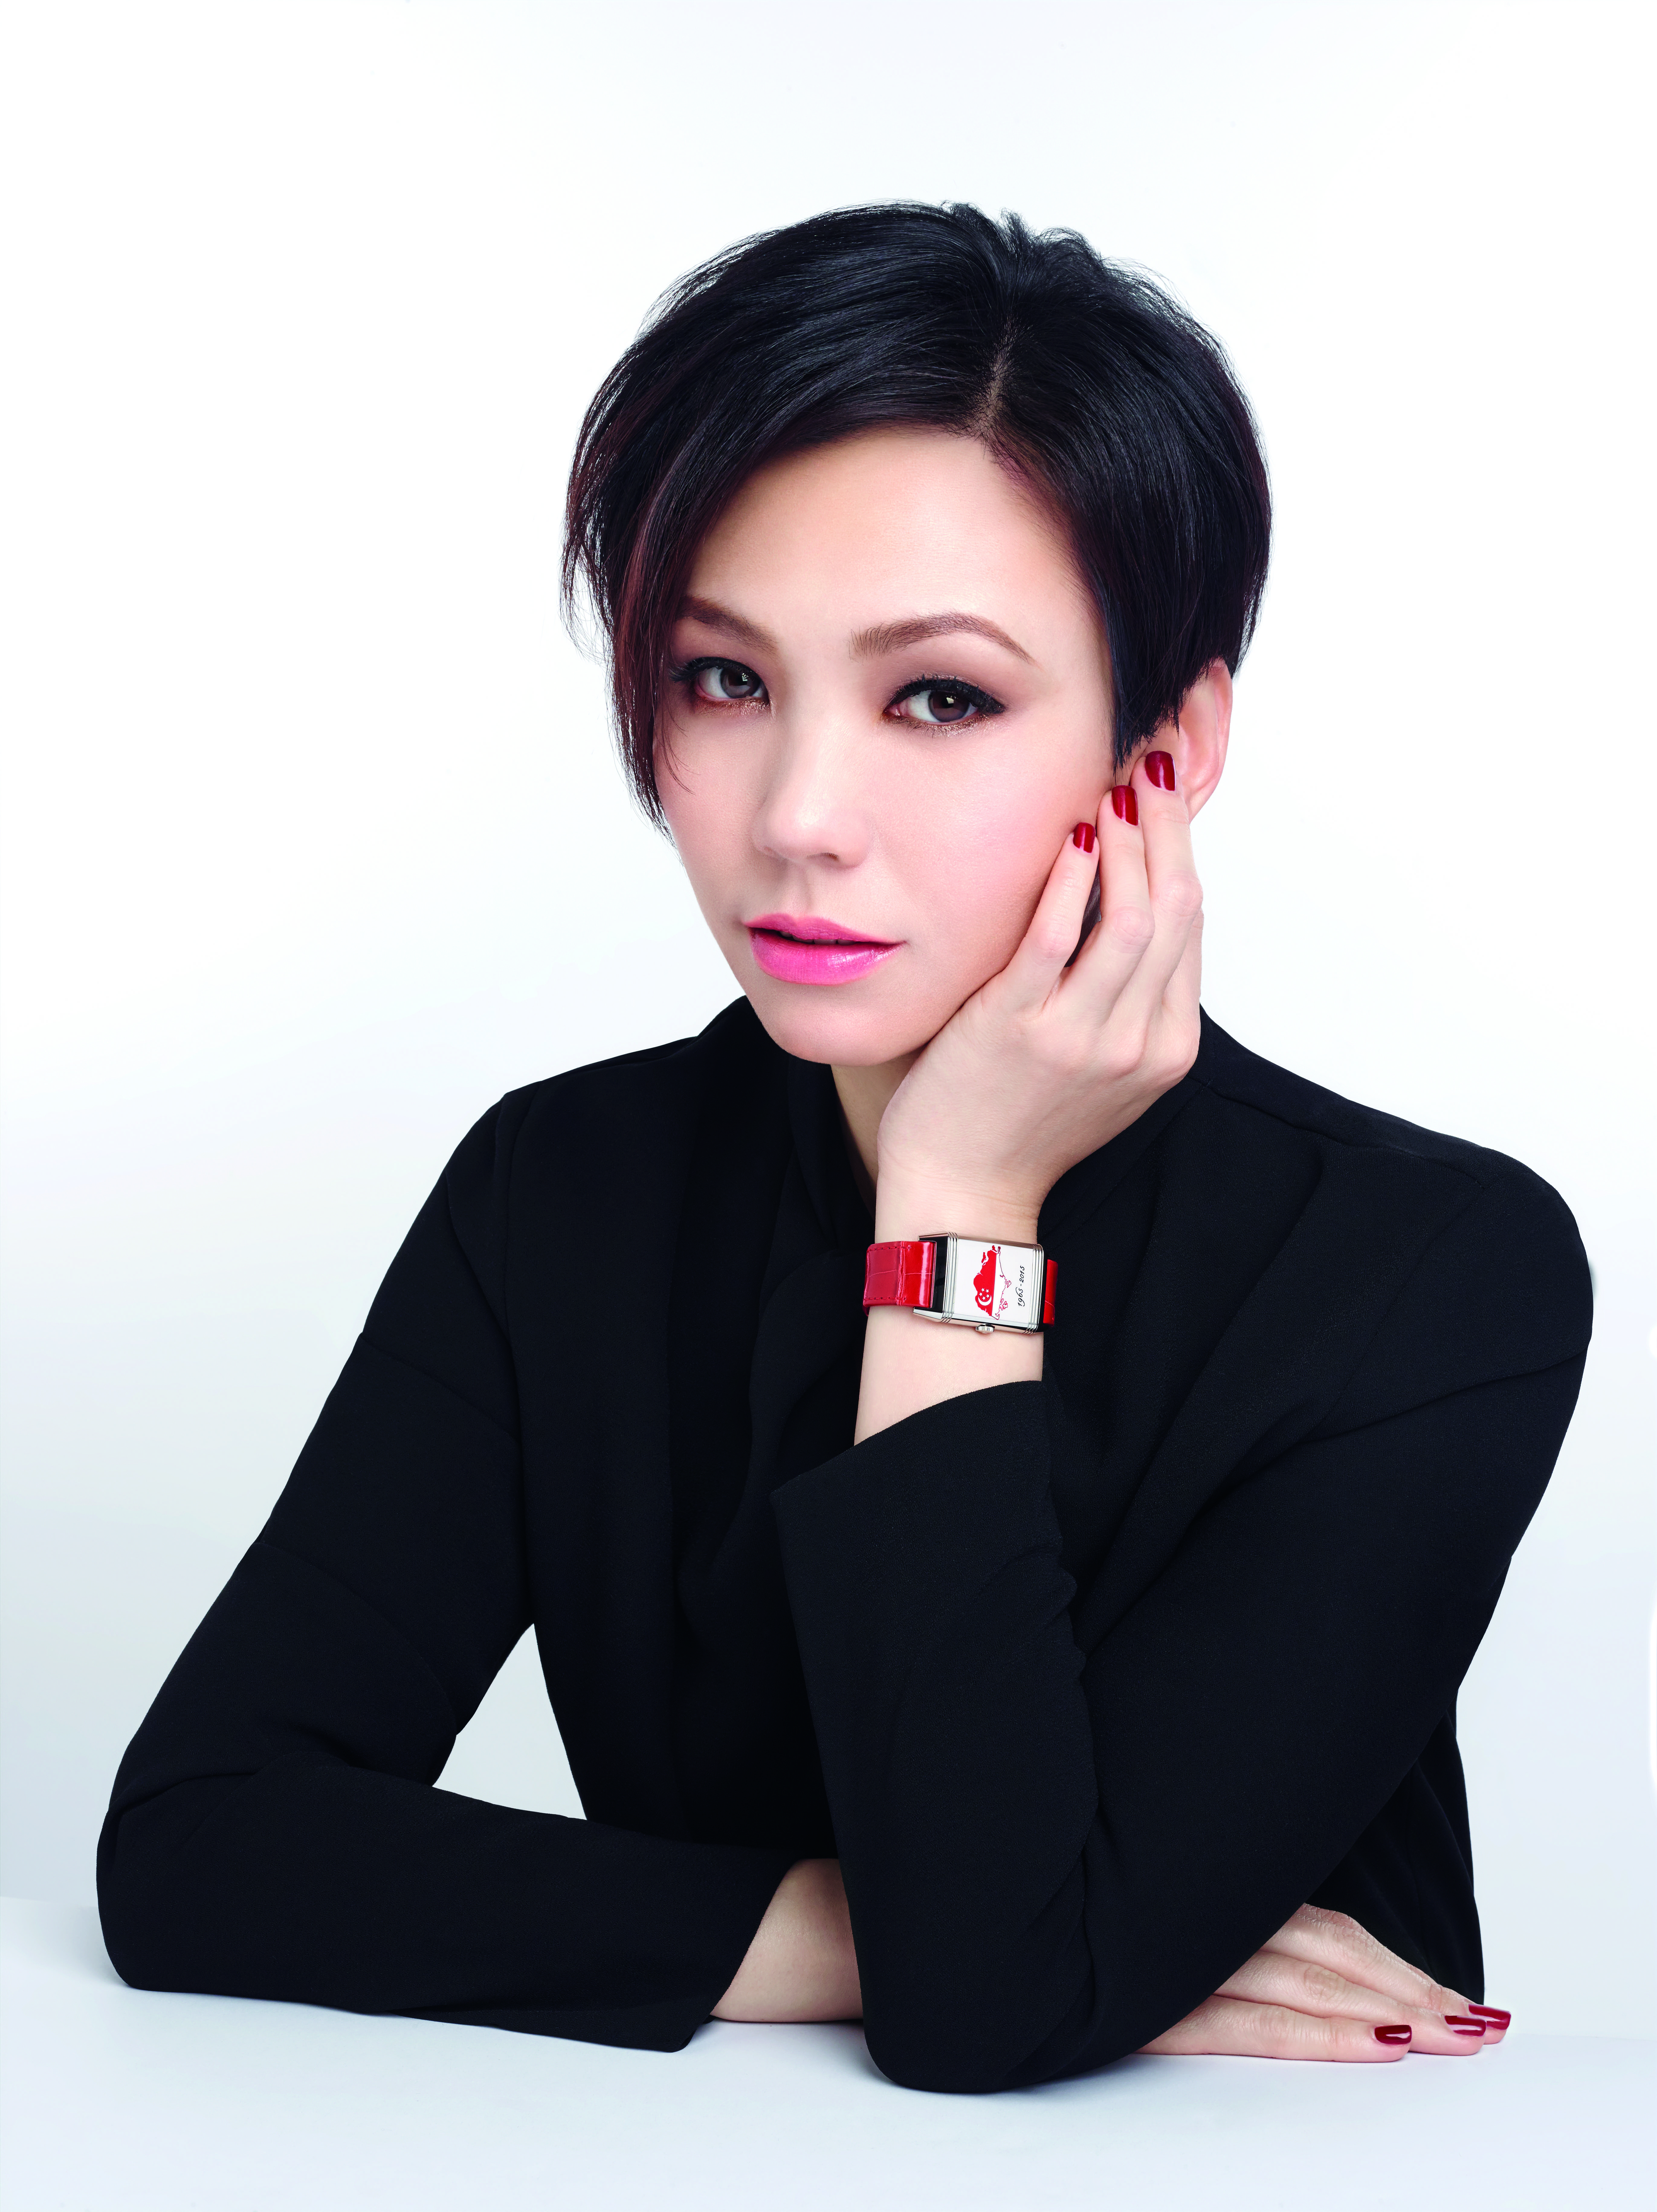 Kit Chan Jaeger-LeCoultre Friend of the brand